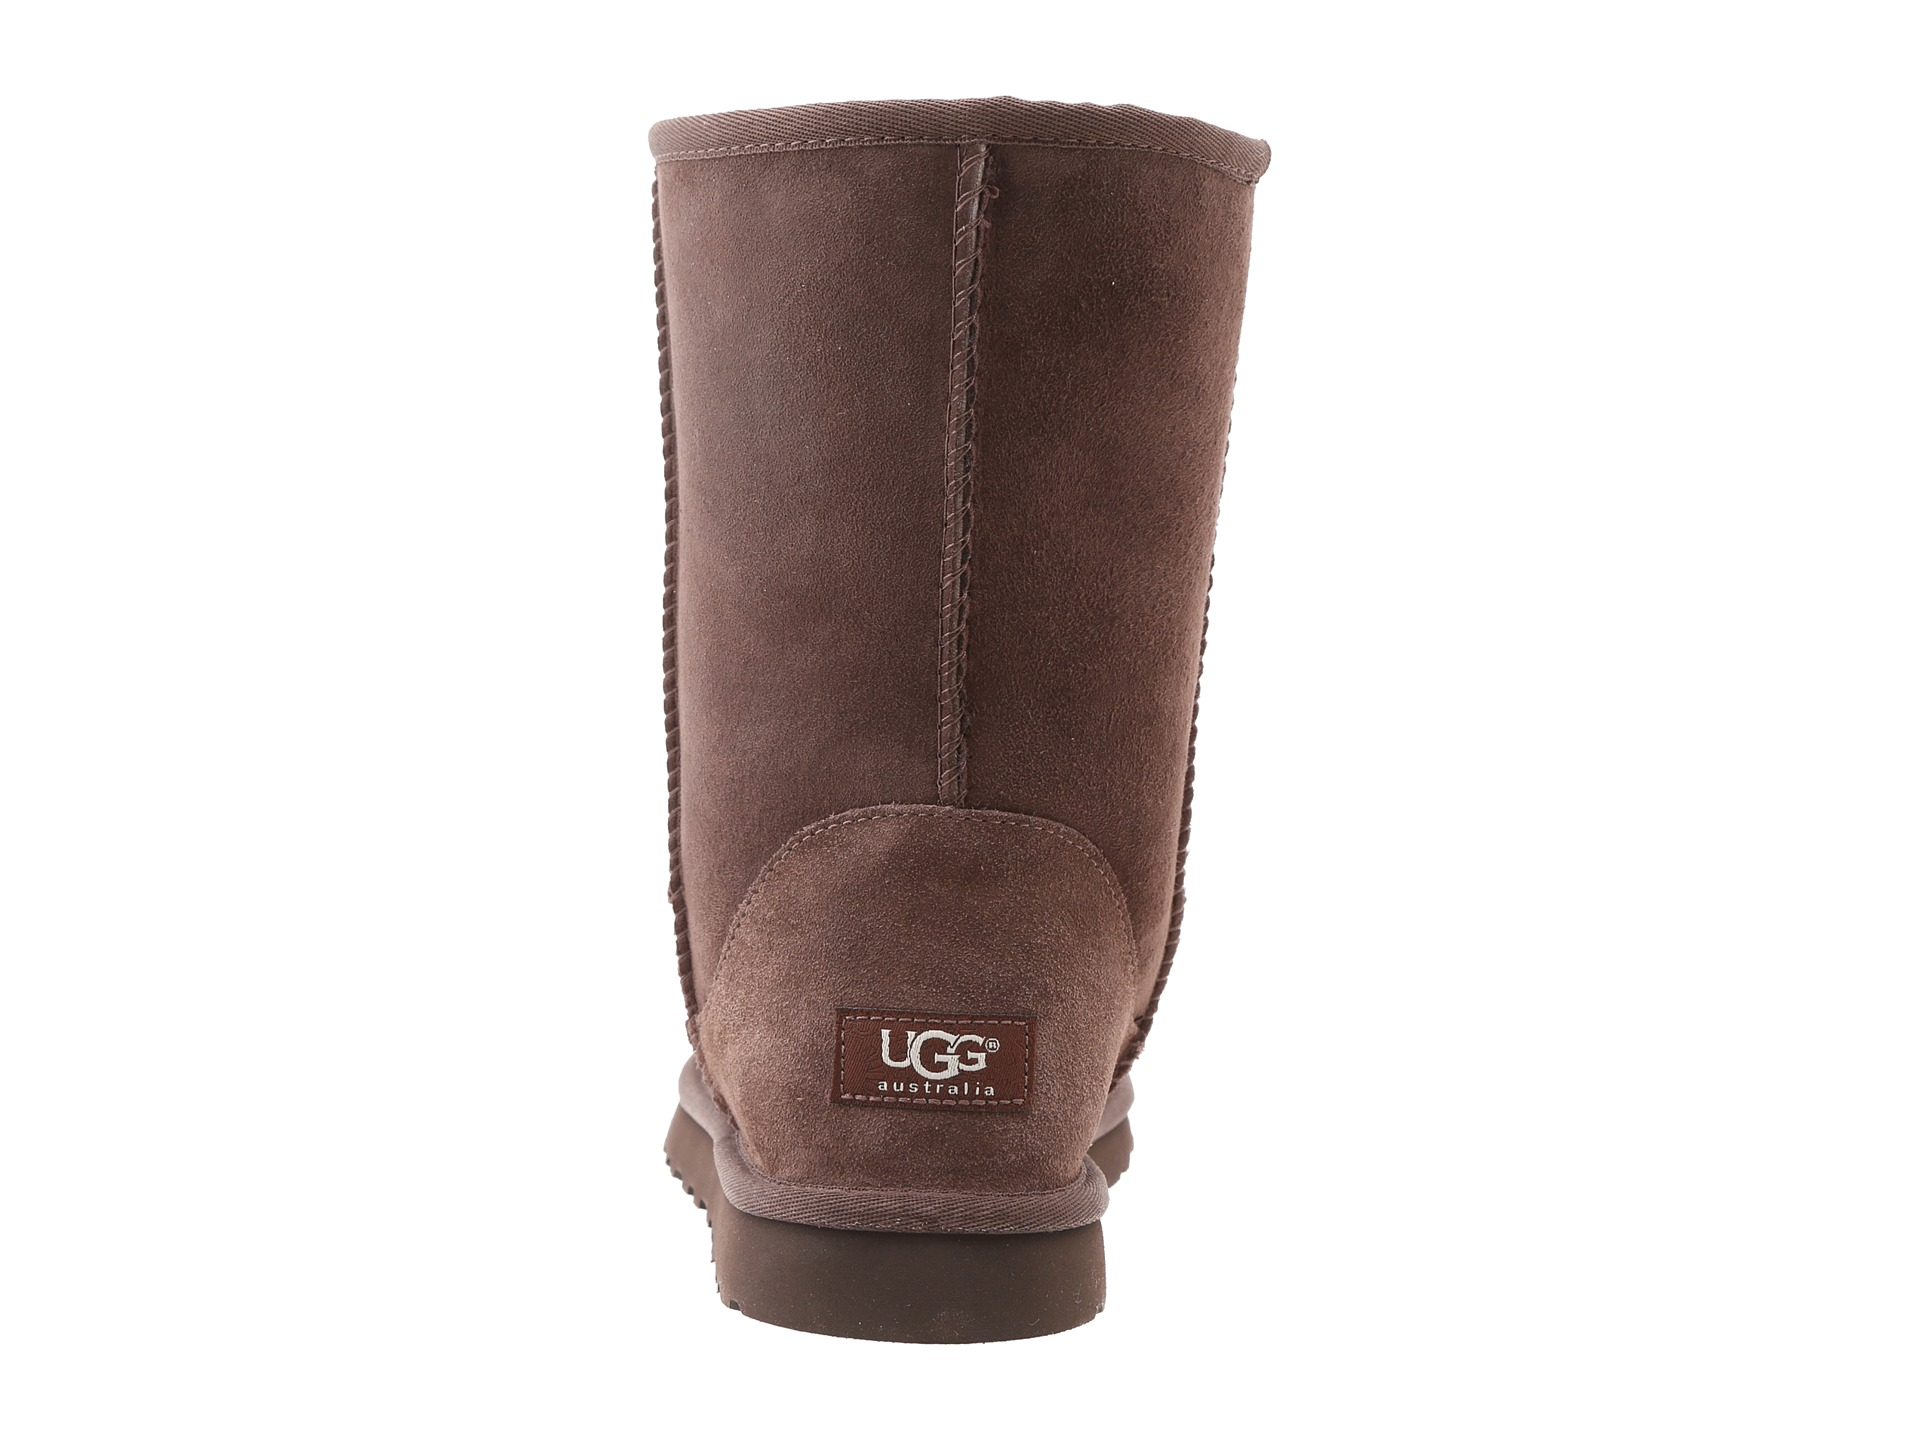 the ugly ugg boots truth watch online